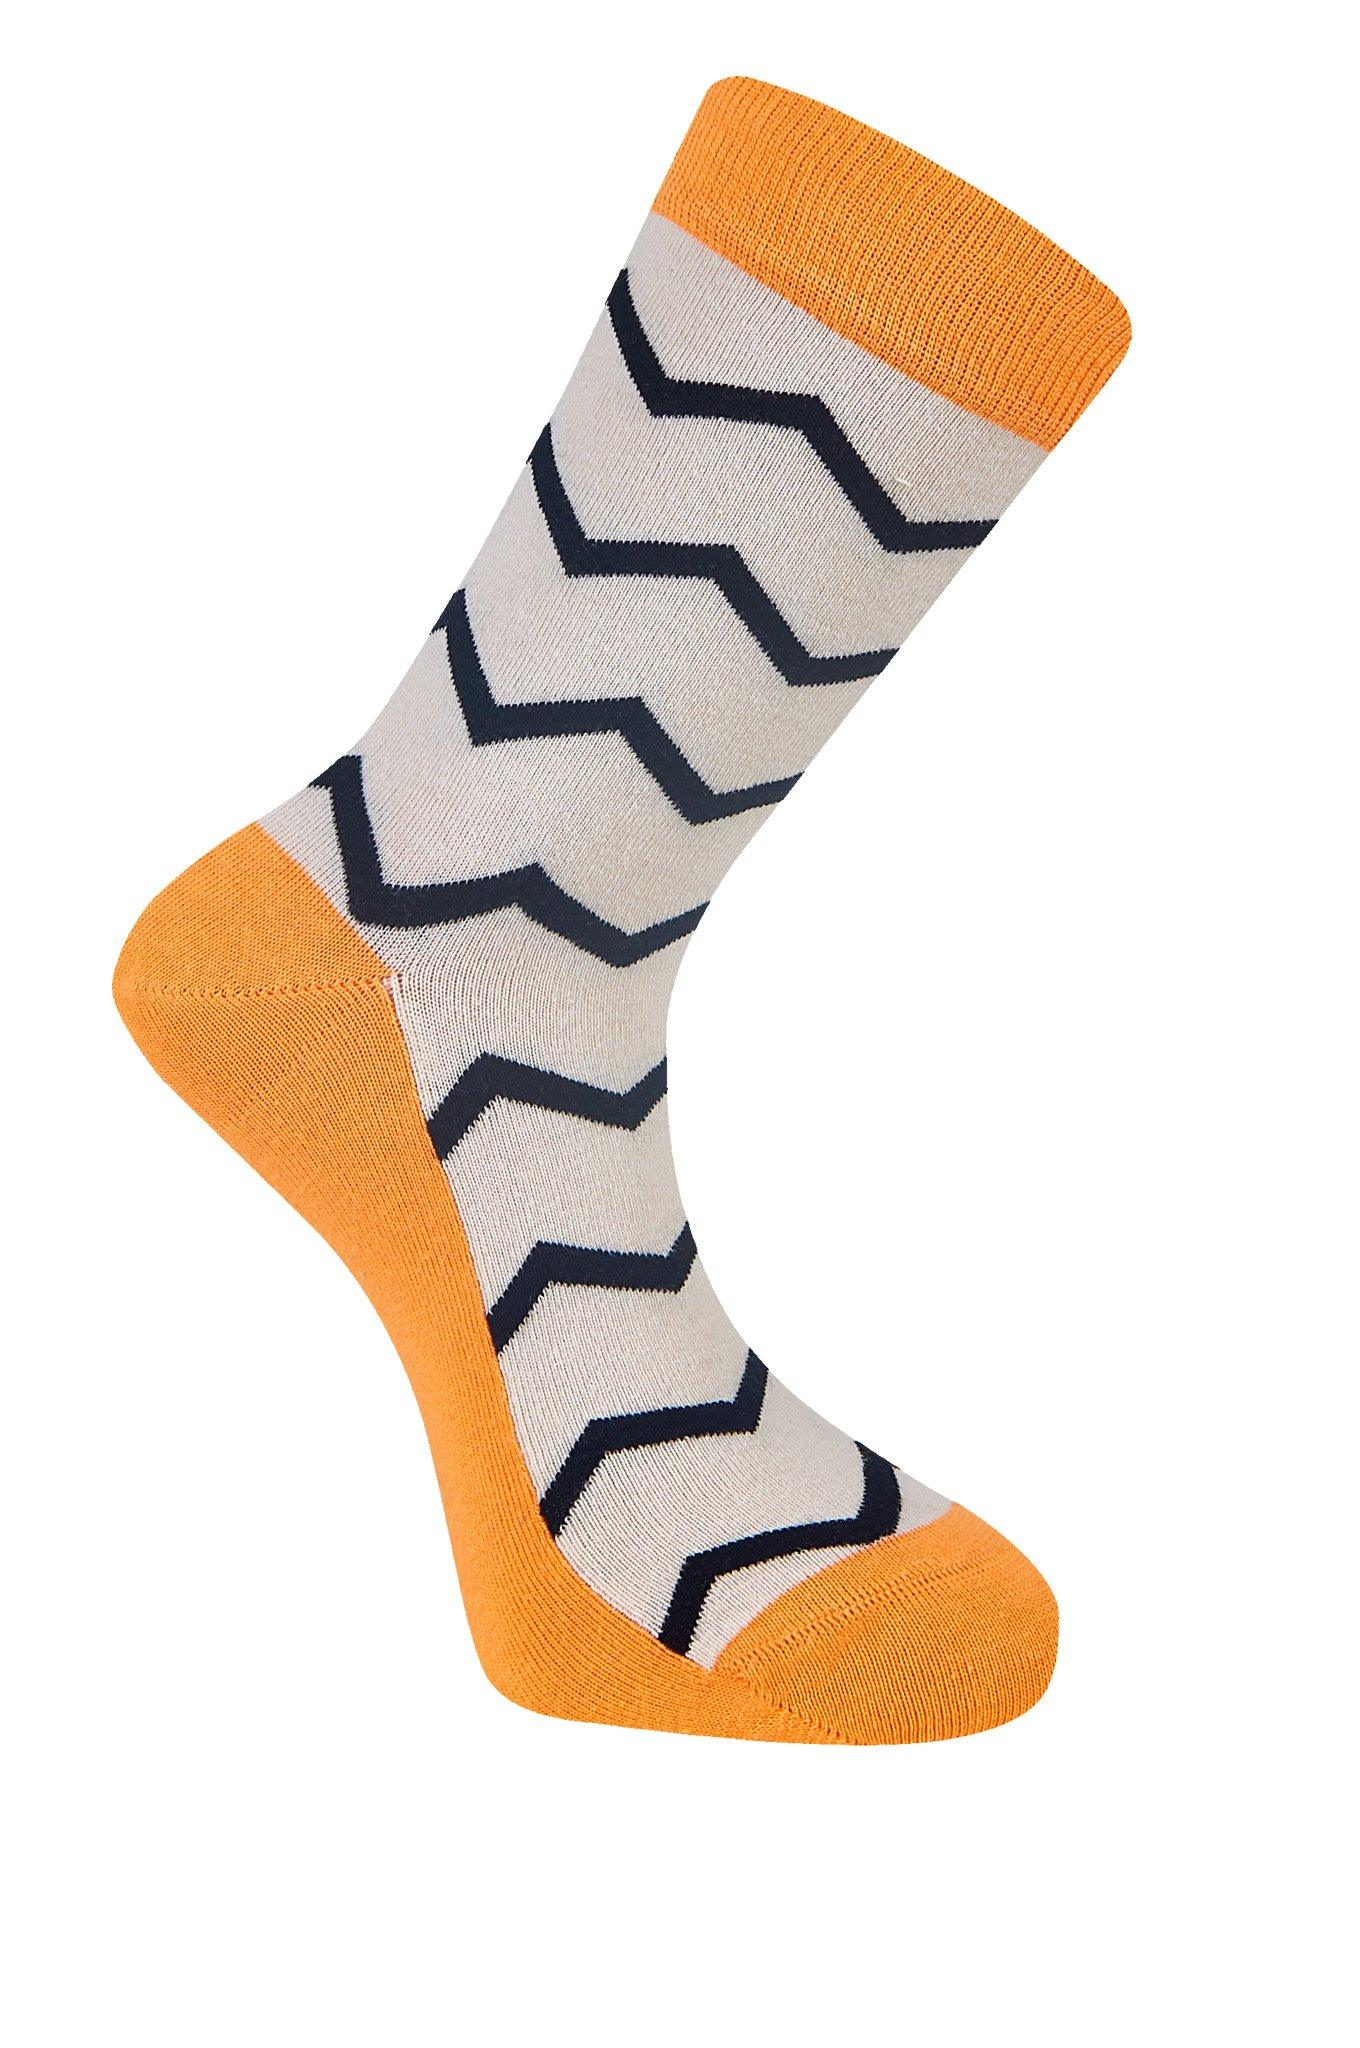 SAPUT Warm Sand Organic Cotton Socks - Komodo Fashion